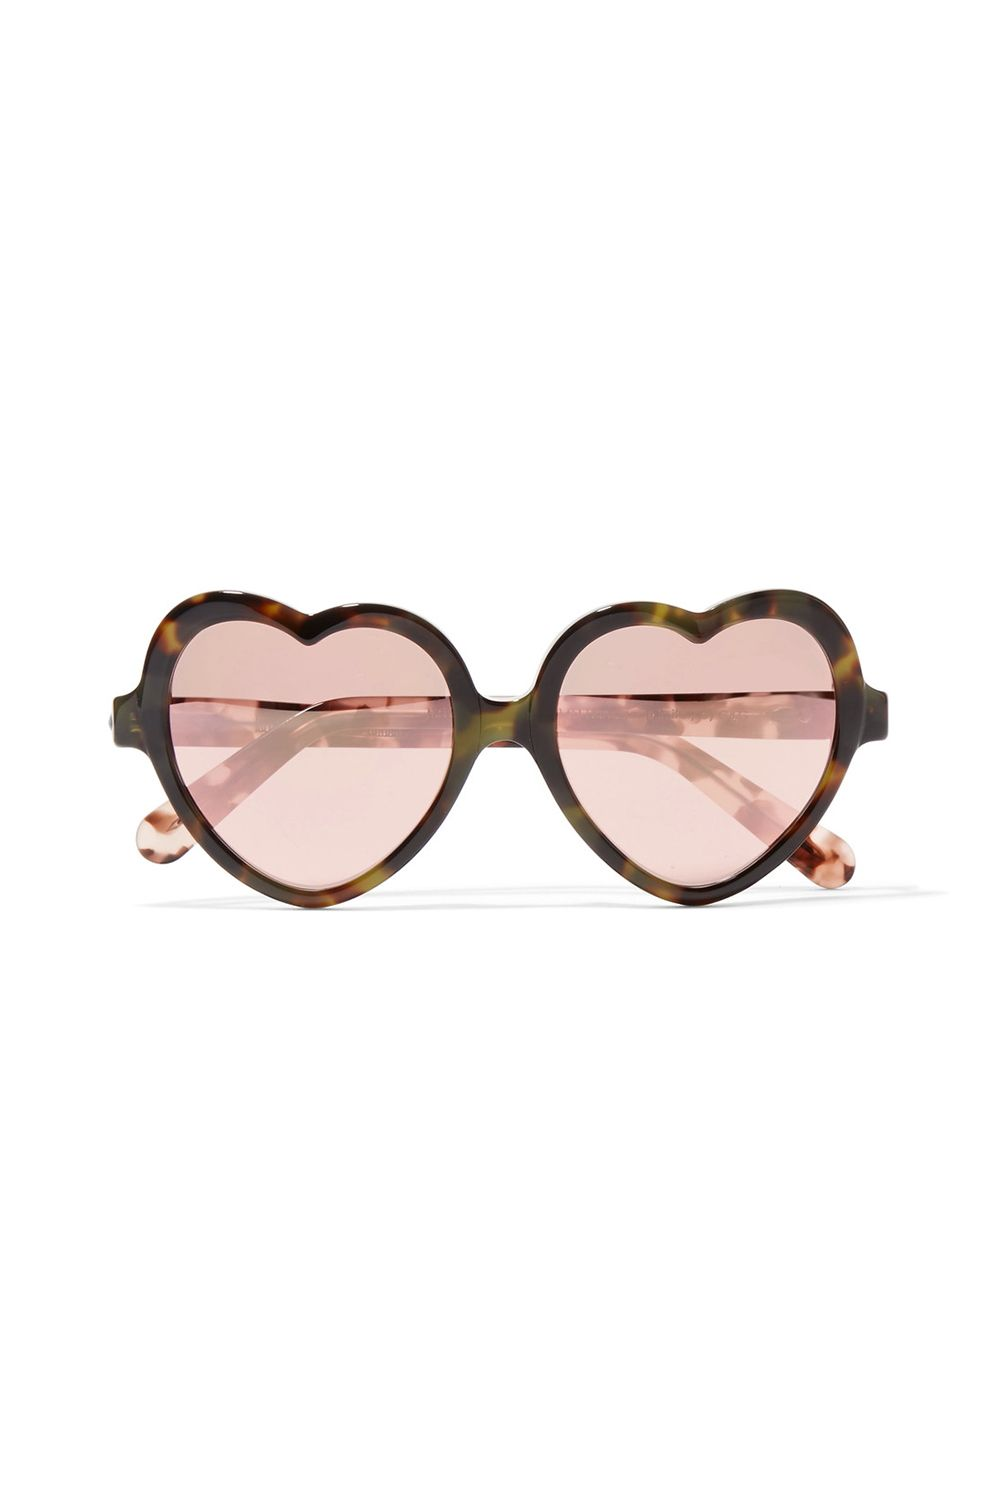 "<p>If Lolita became a sugar baby. </p><p>$565, <a href=""https://www.net-a-porter.com/us/en/product/861115/Cutler_and_Gross/love-bite-acetate-mirrored-sunglasses"" target=""_blank"" data-tracking-id=""recirc-text-link"">net-a-porter.com</a>.</p>"